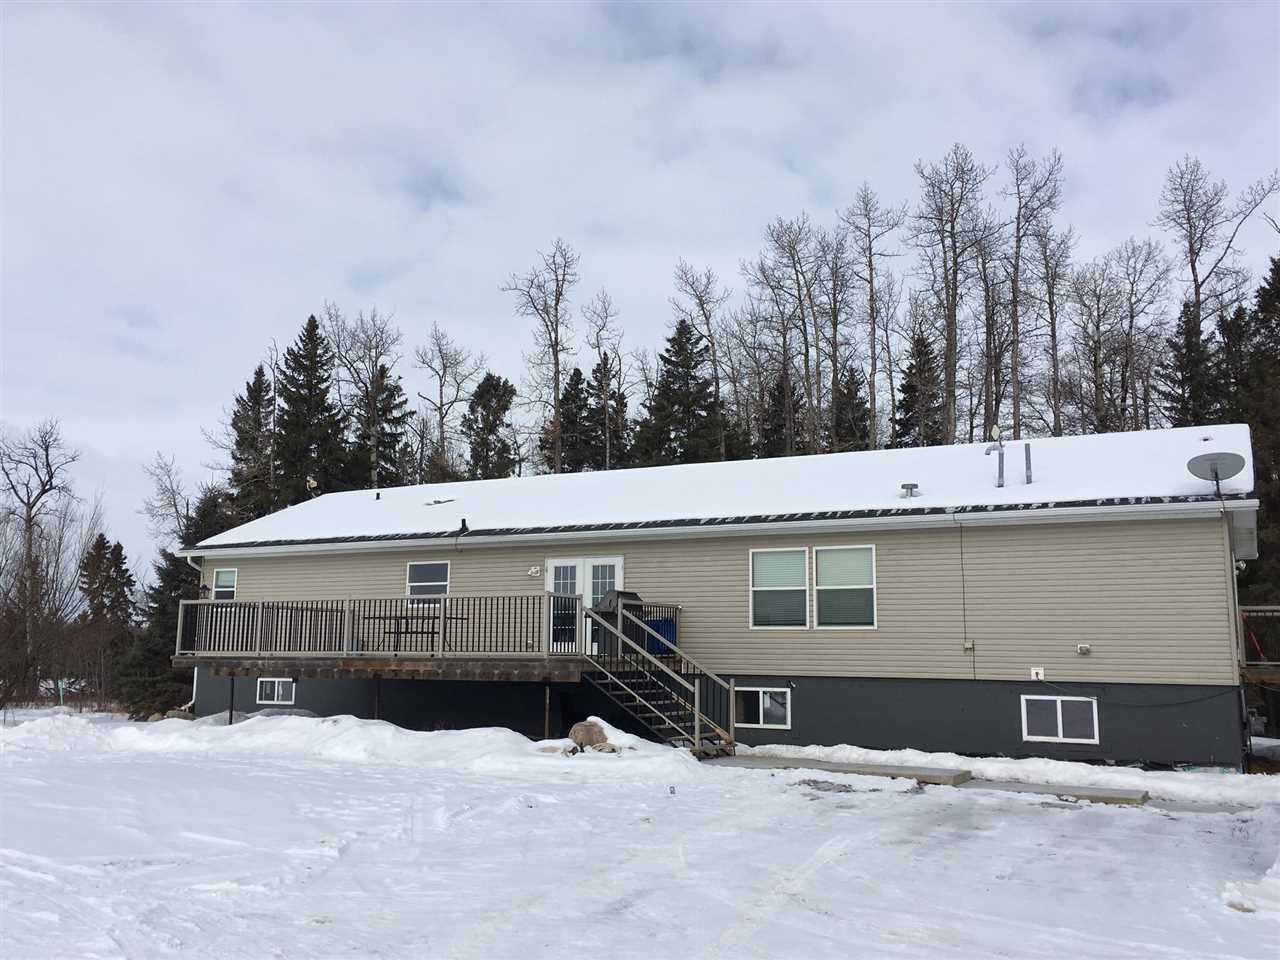 Main Photo: 271024 Twp Rd 465: Rural Wetaskiwin County House for sale : MLS®# E4153114